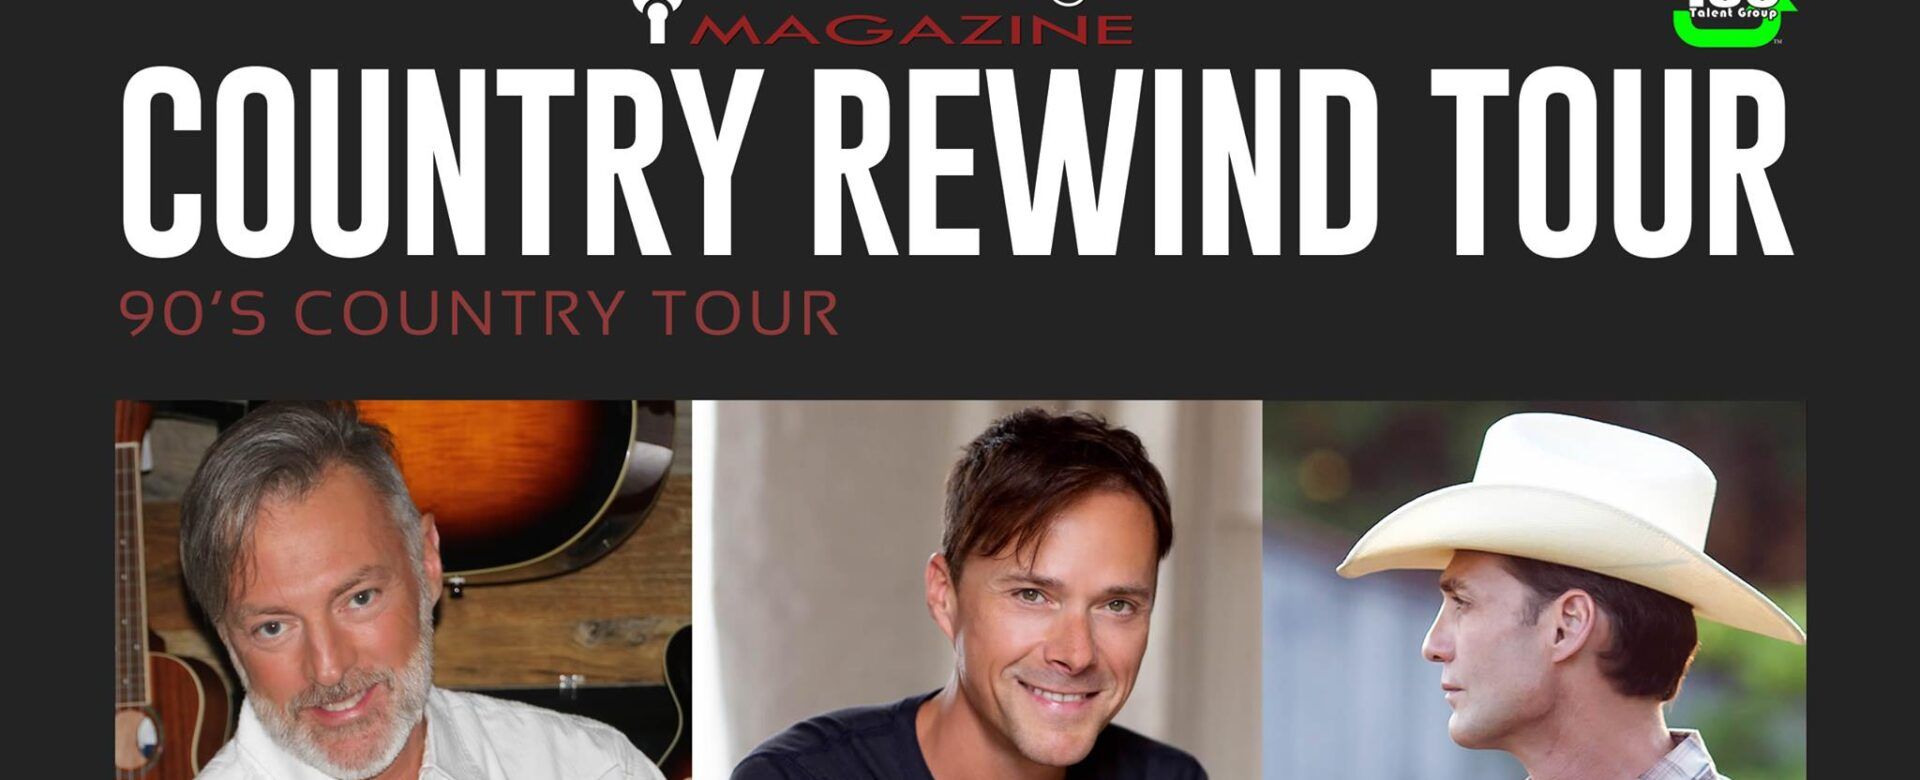 Country Rewind Tour, March 13th: Darryl Worley, Bryan White, Wade Hayes